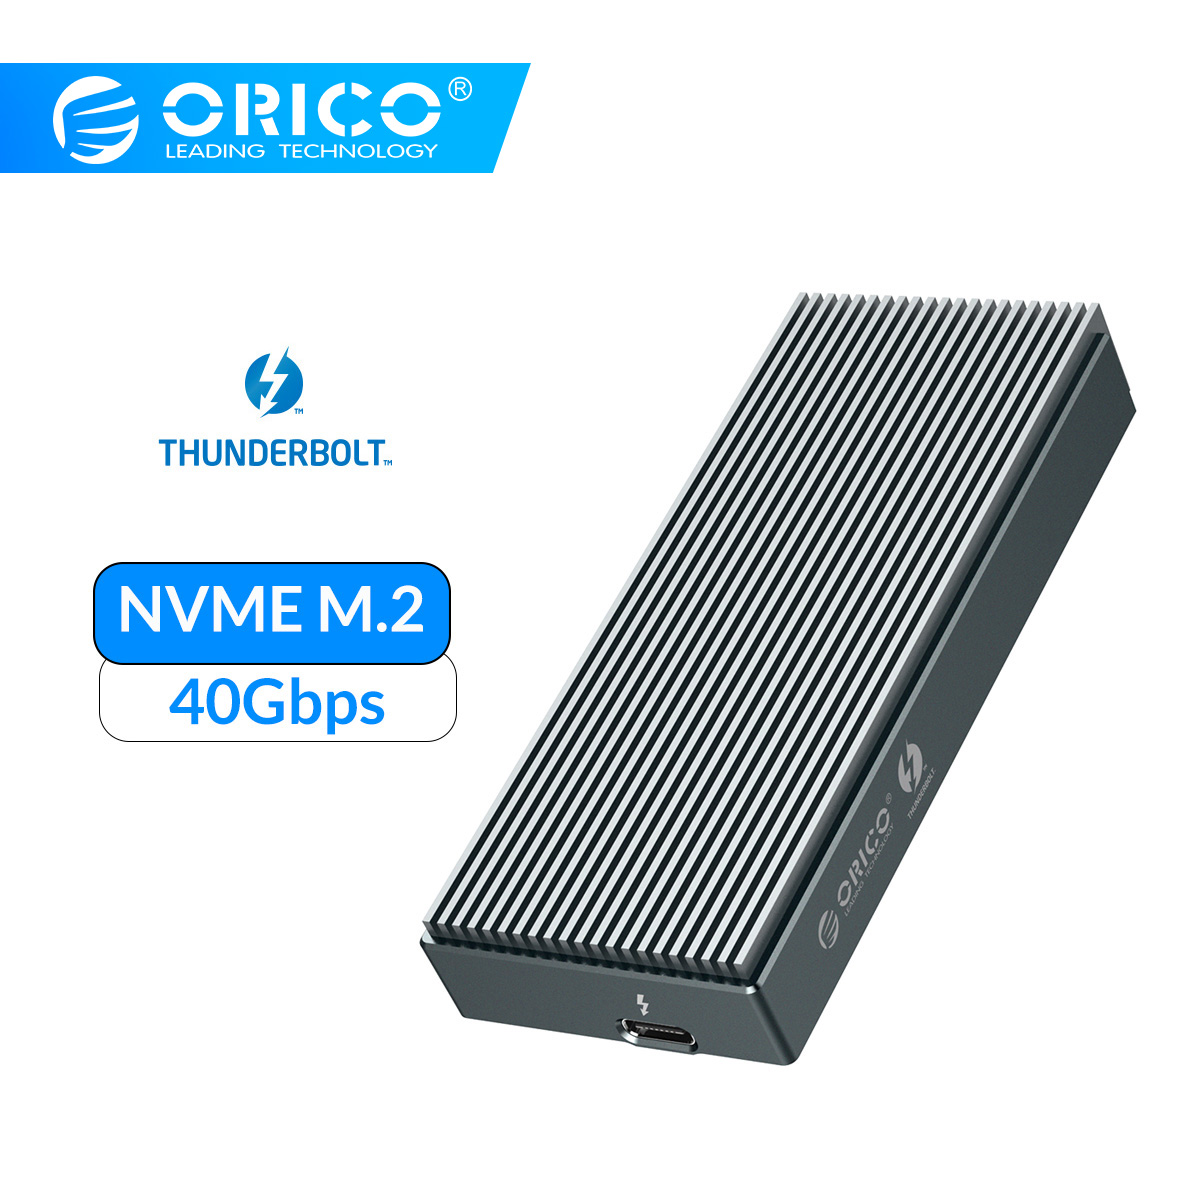 ORICO Thunderbolt 3 NVME M.2 SSD Enclosure Support 2TB Aluminum SSD Case USB C With 40Gbps Thunderbolt 3 C To C Cable